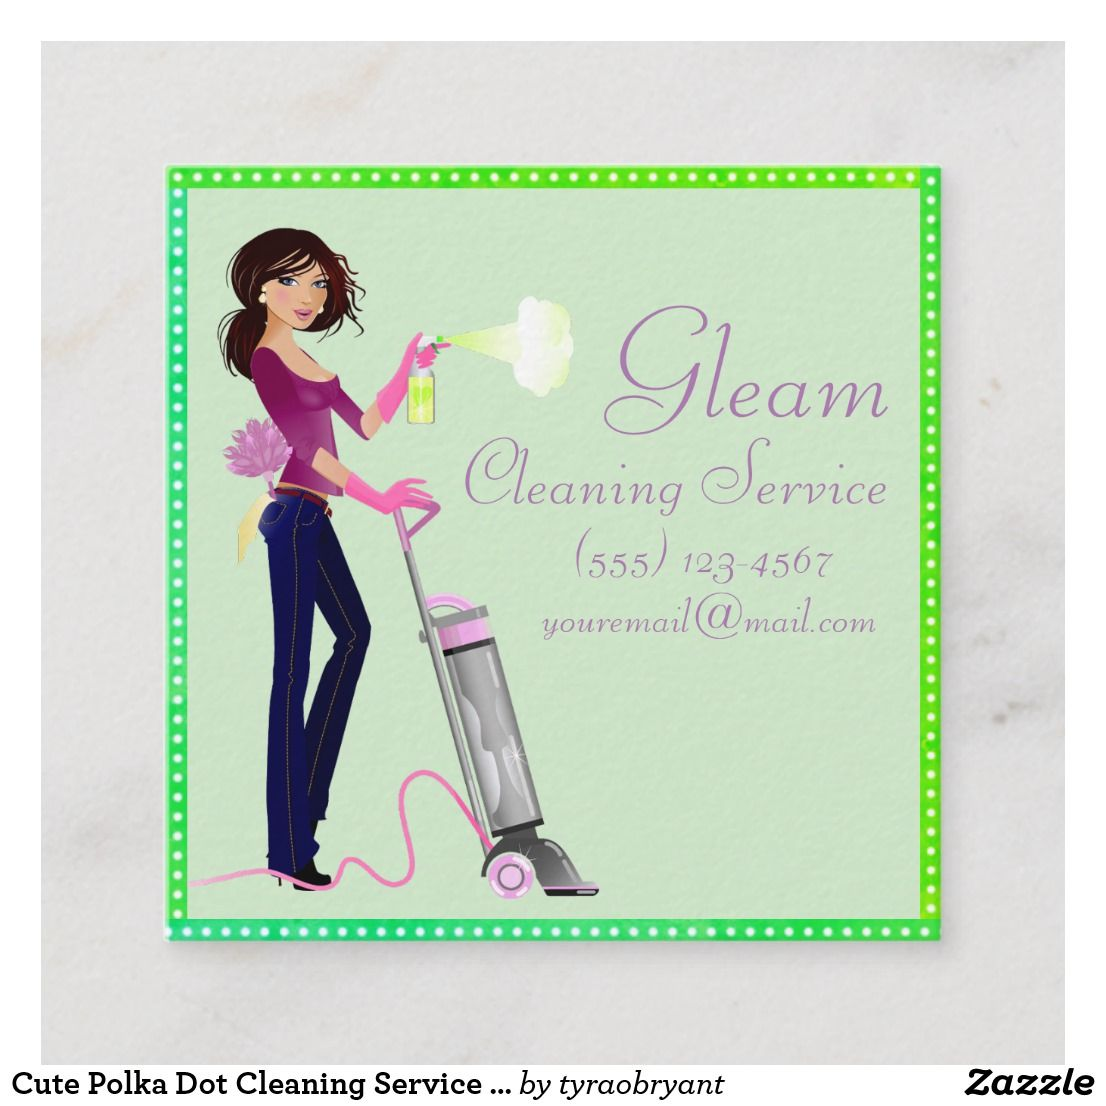 Cute polka dot cleaning service lady square business card